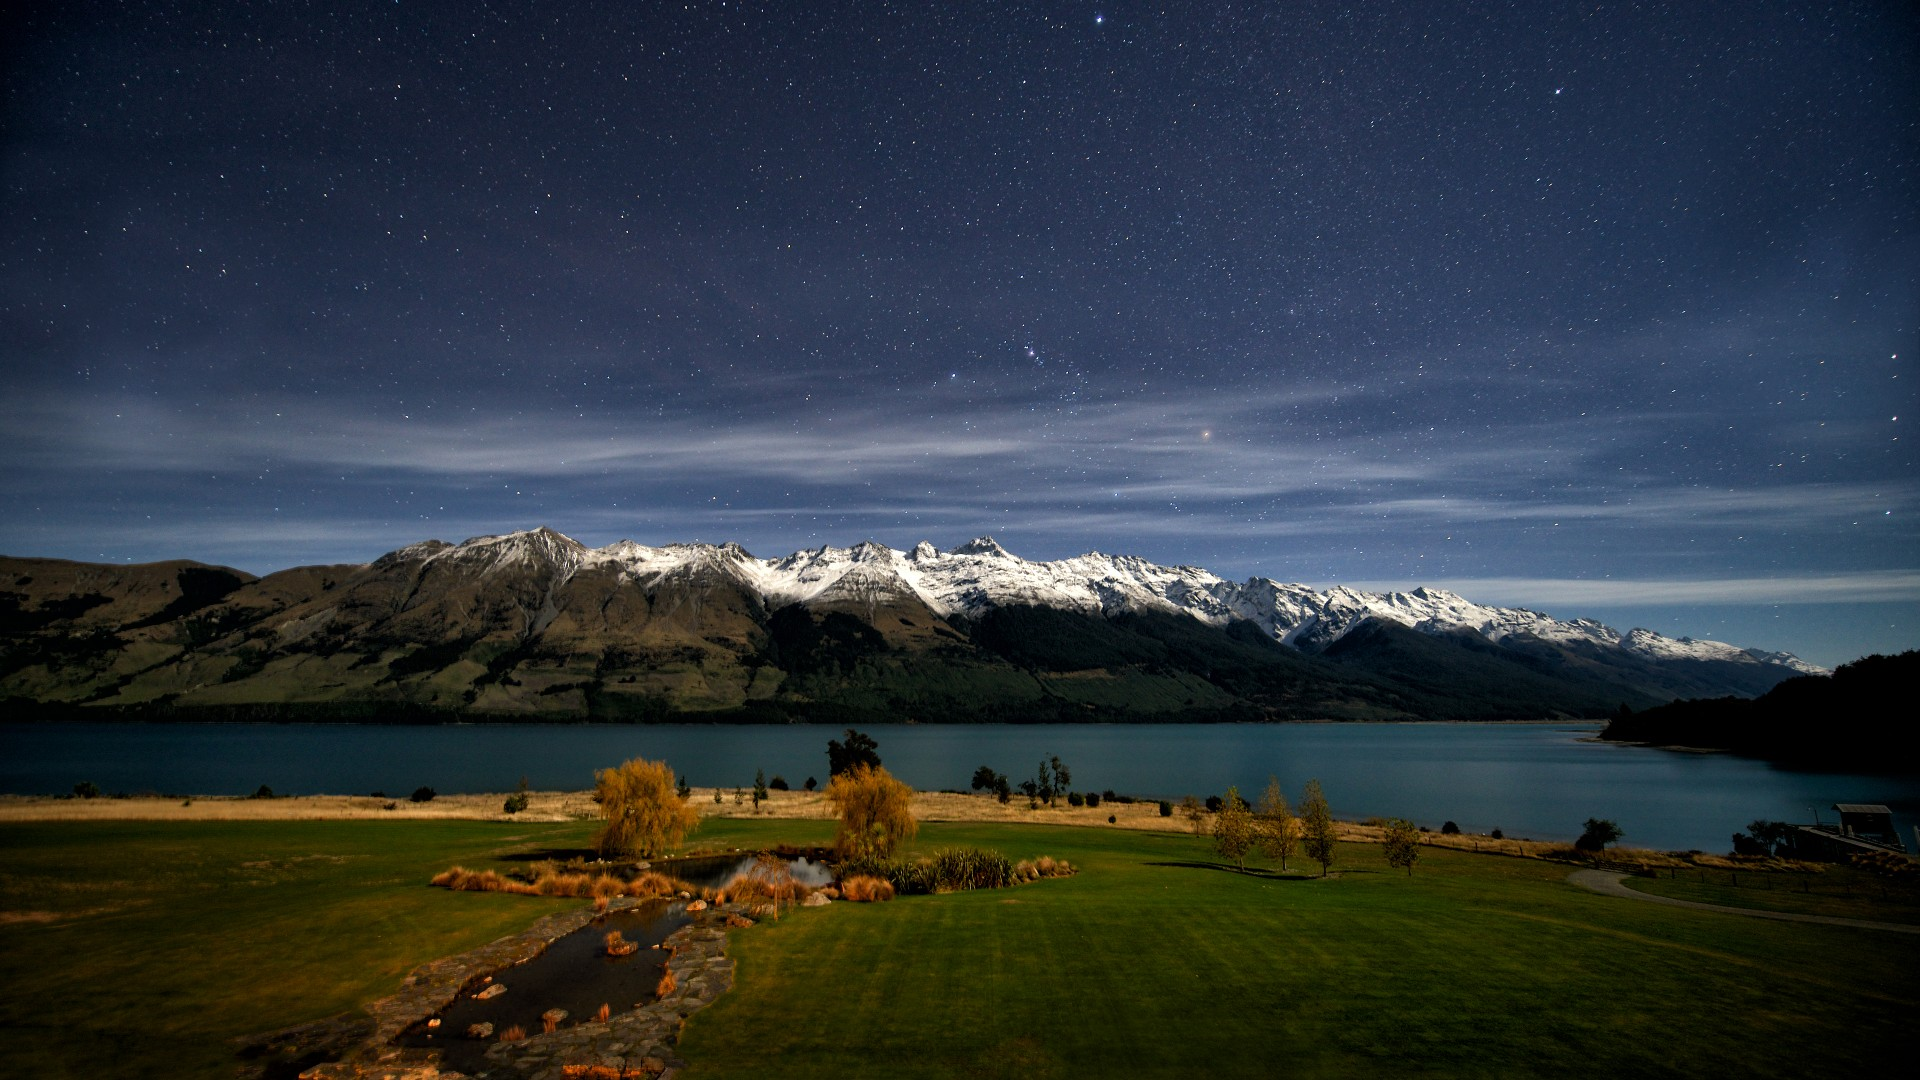 wallpaper new zealand, 4k, hd wallpaper, queenstown, lake wakatipu